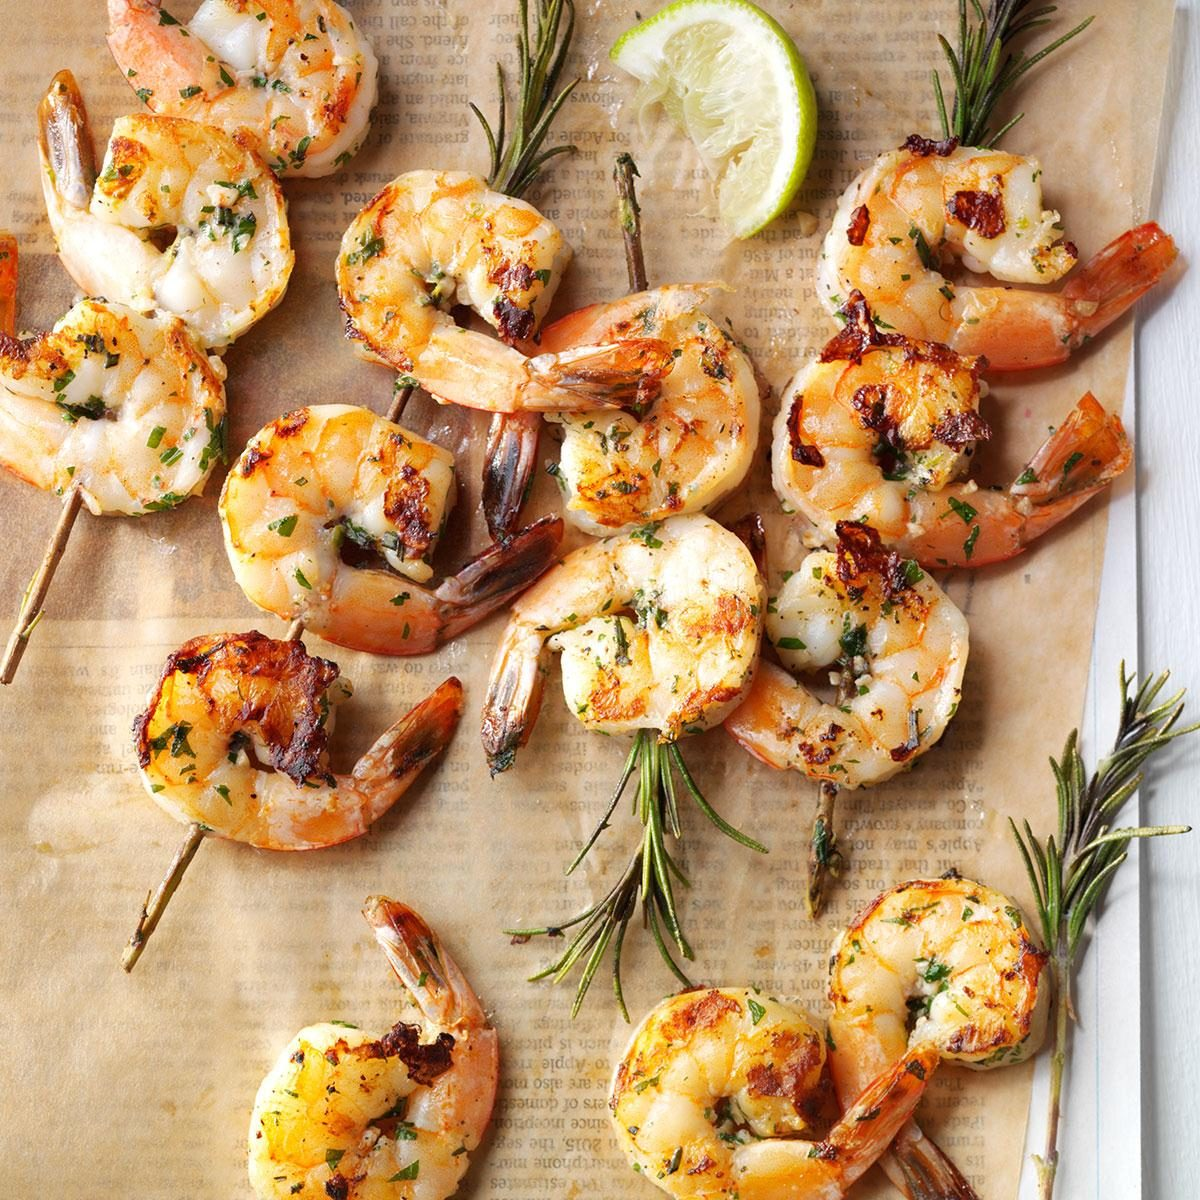 Lime-Rosemary Shrimp Skewers